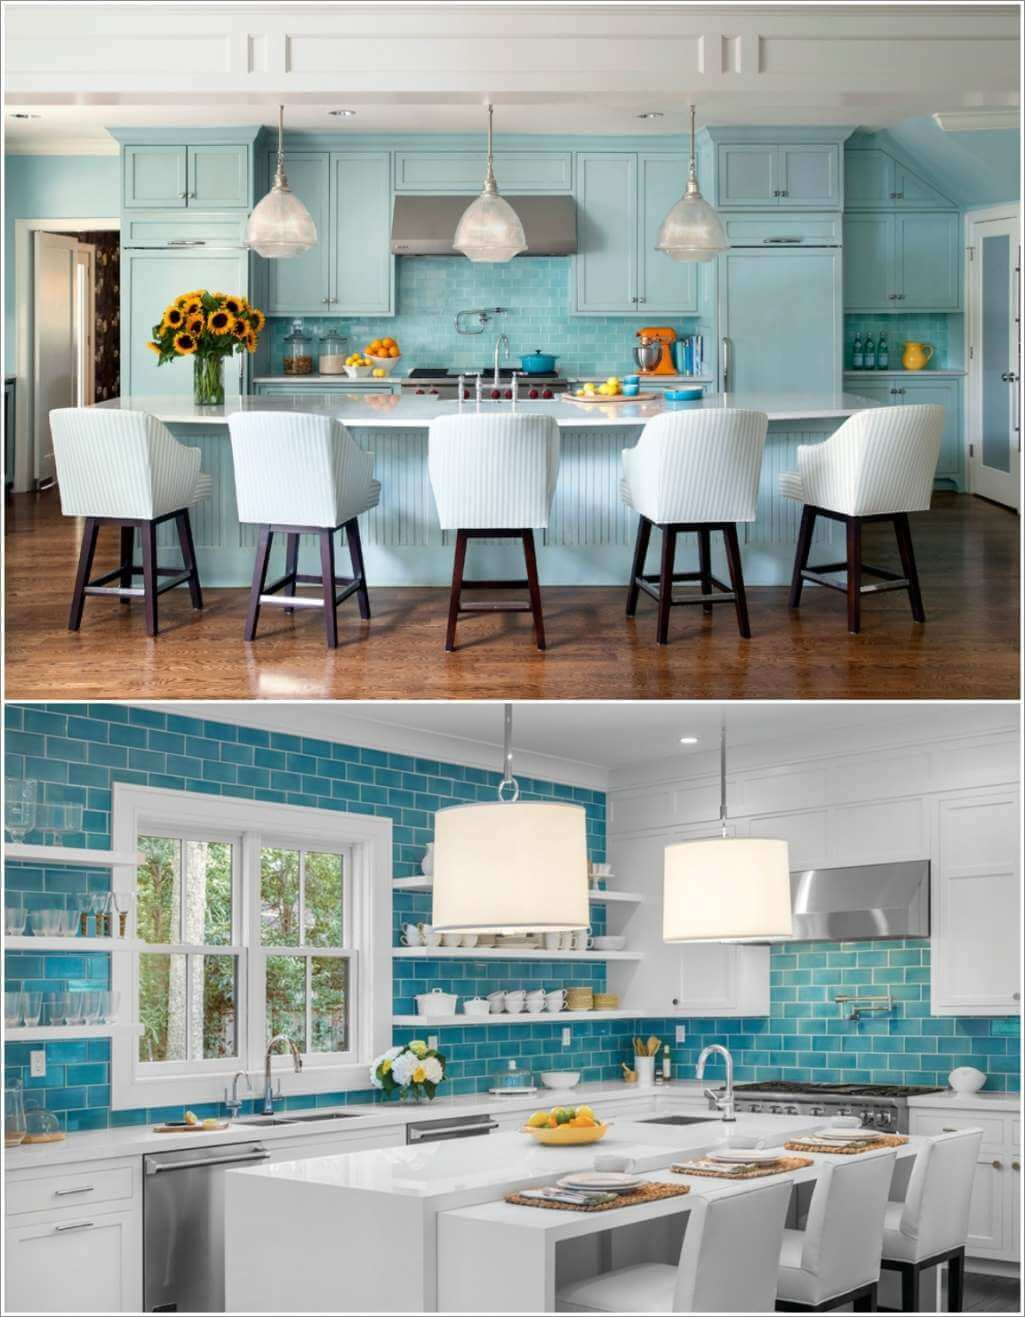 Ways to Decorate a Kitchen with Blue-Green